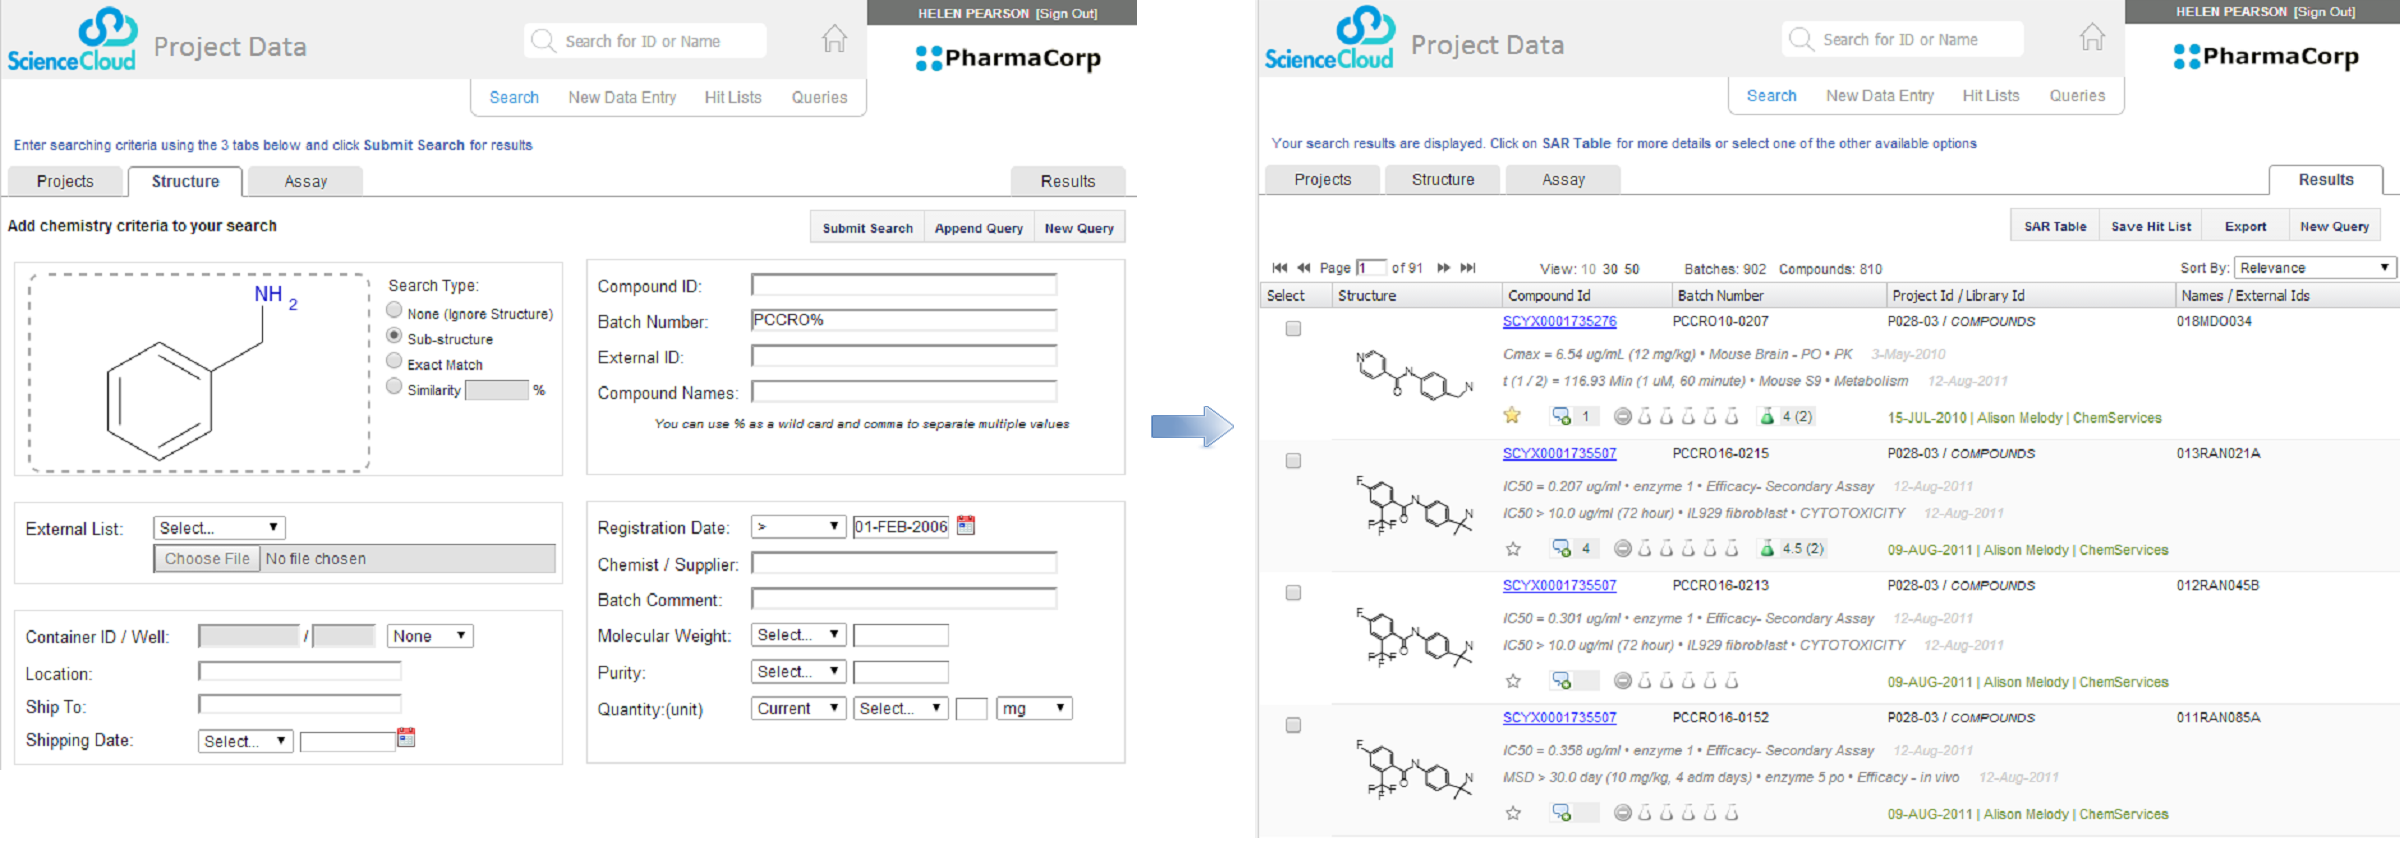 Query form and result window following a registration in the Project Data application.